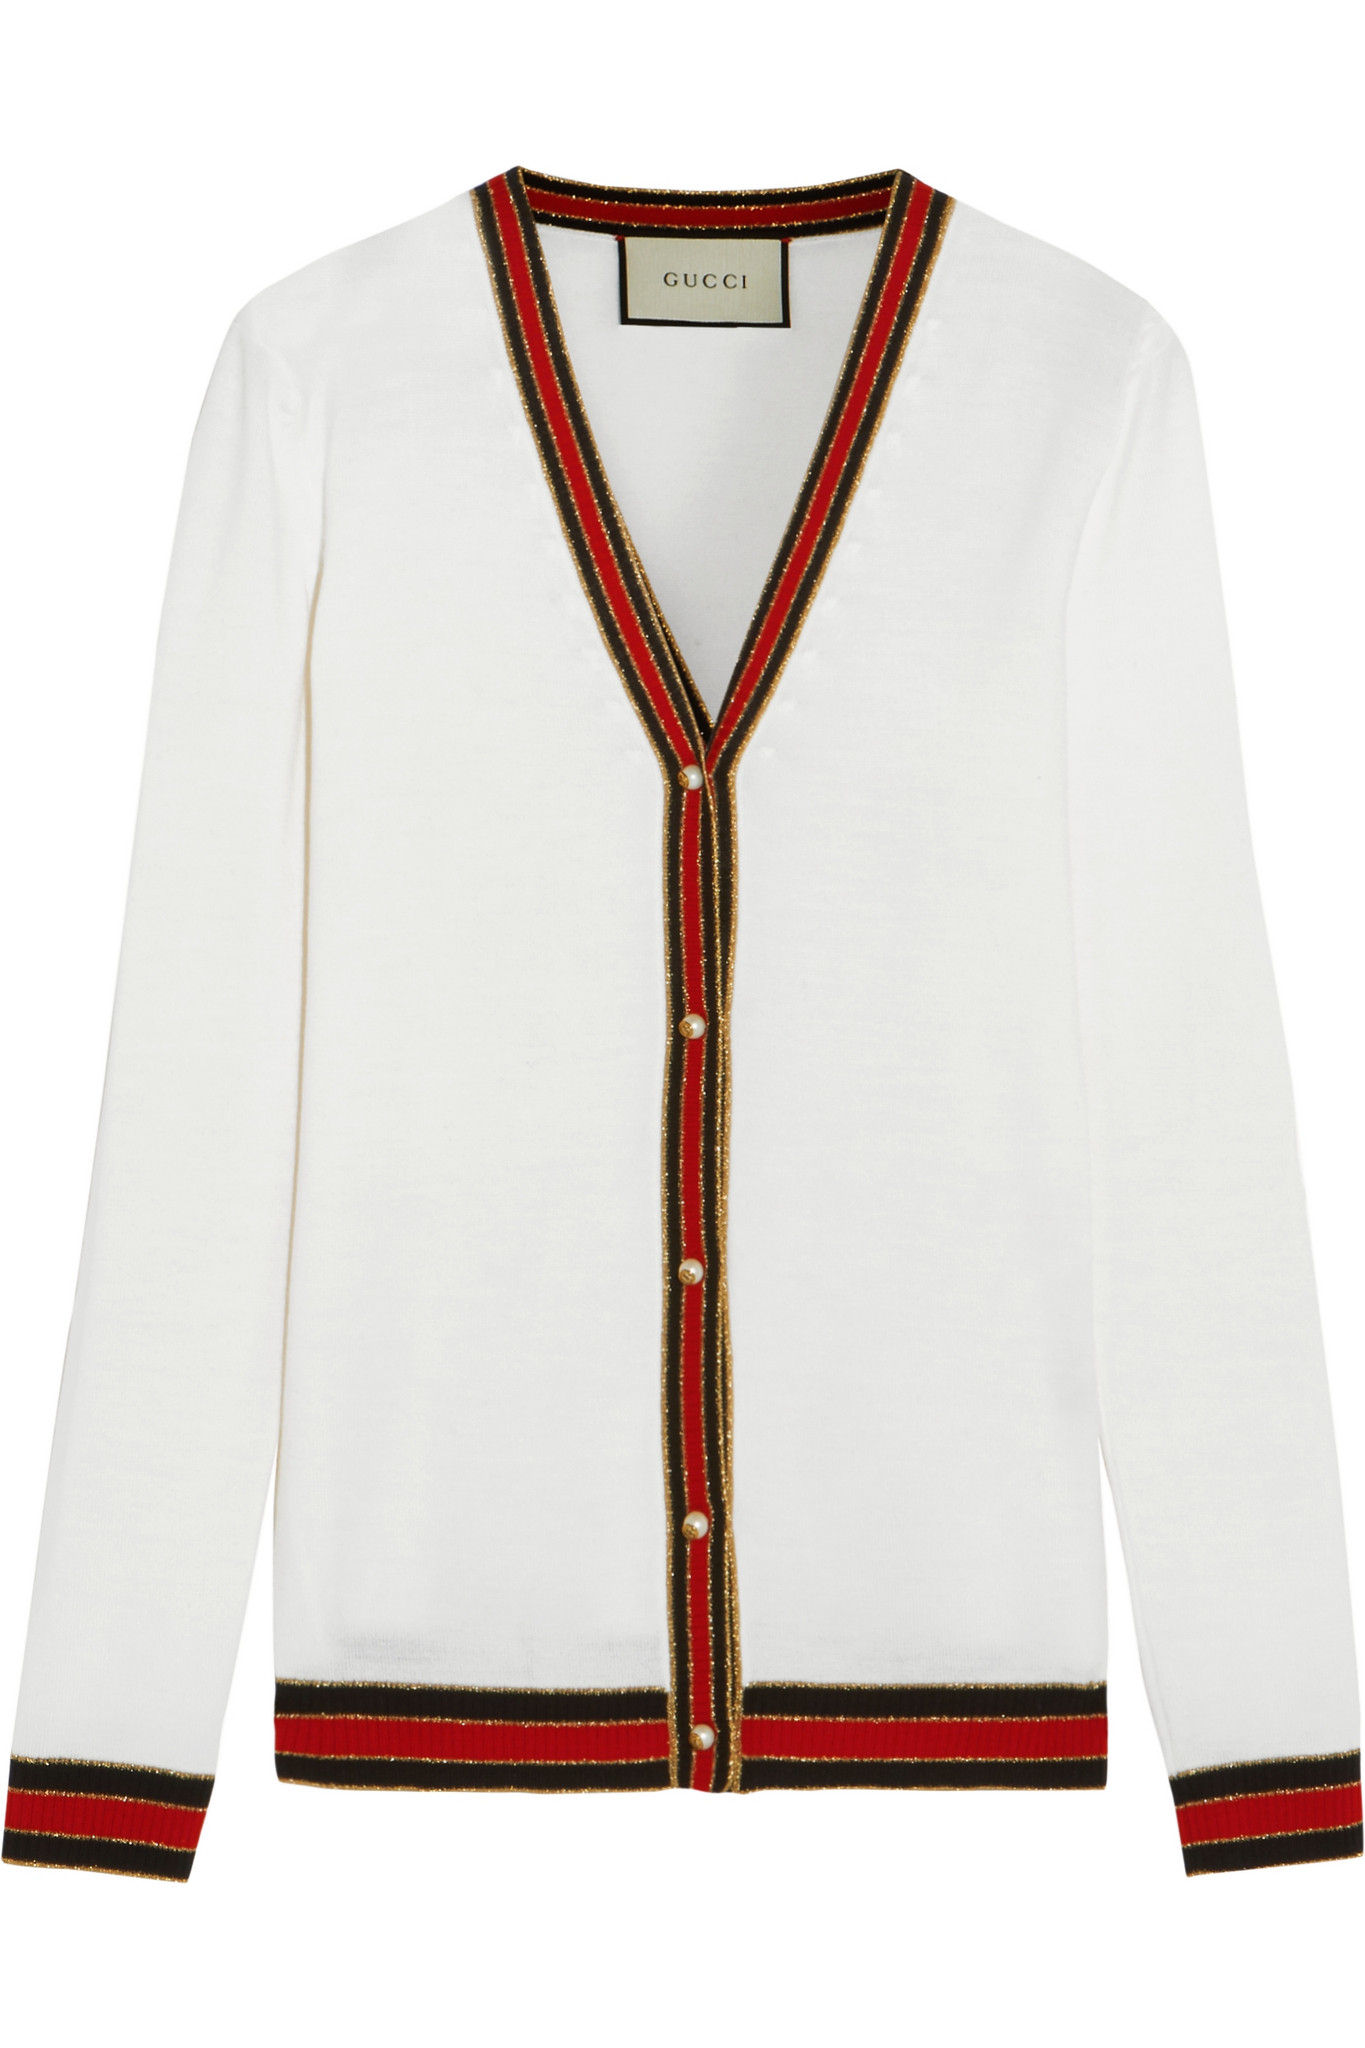 5af9115e225 Lyst - Gucci Striped Wool Cardigan in White